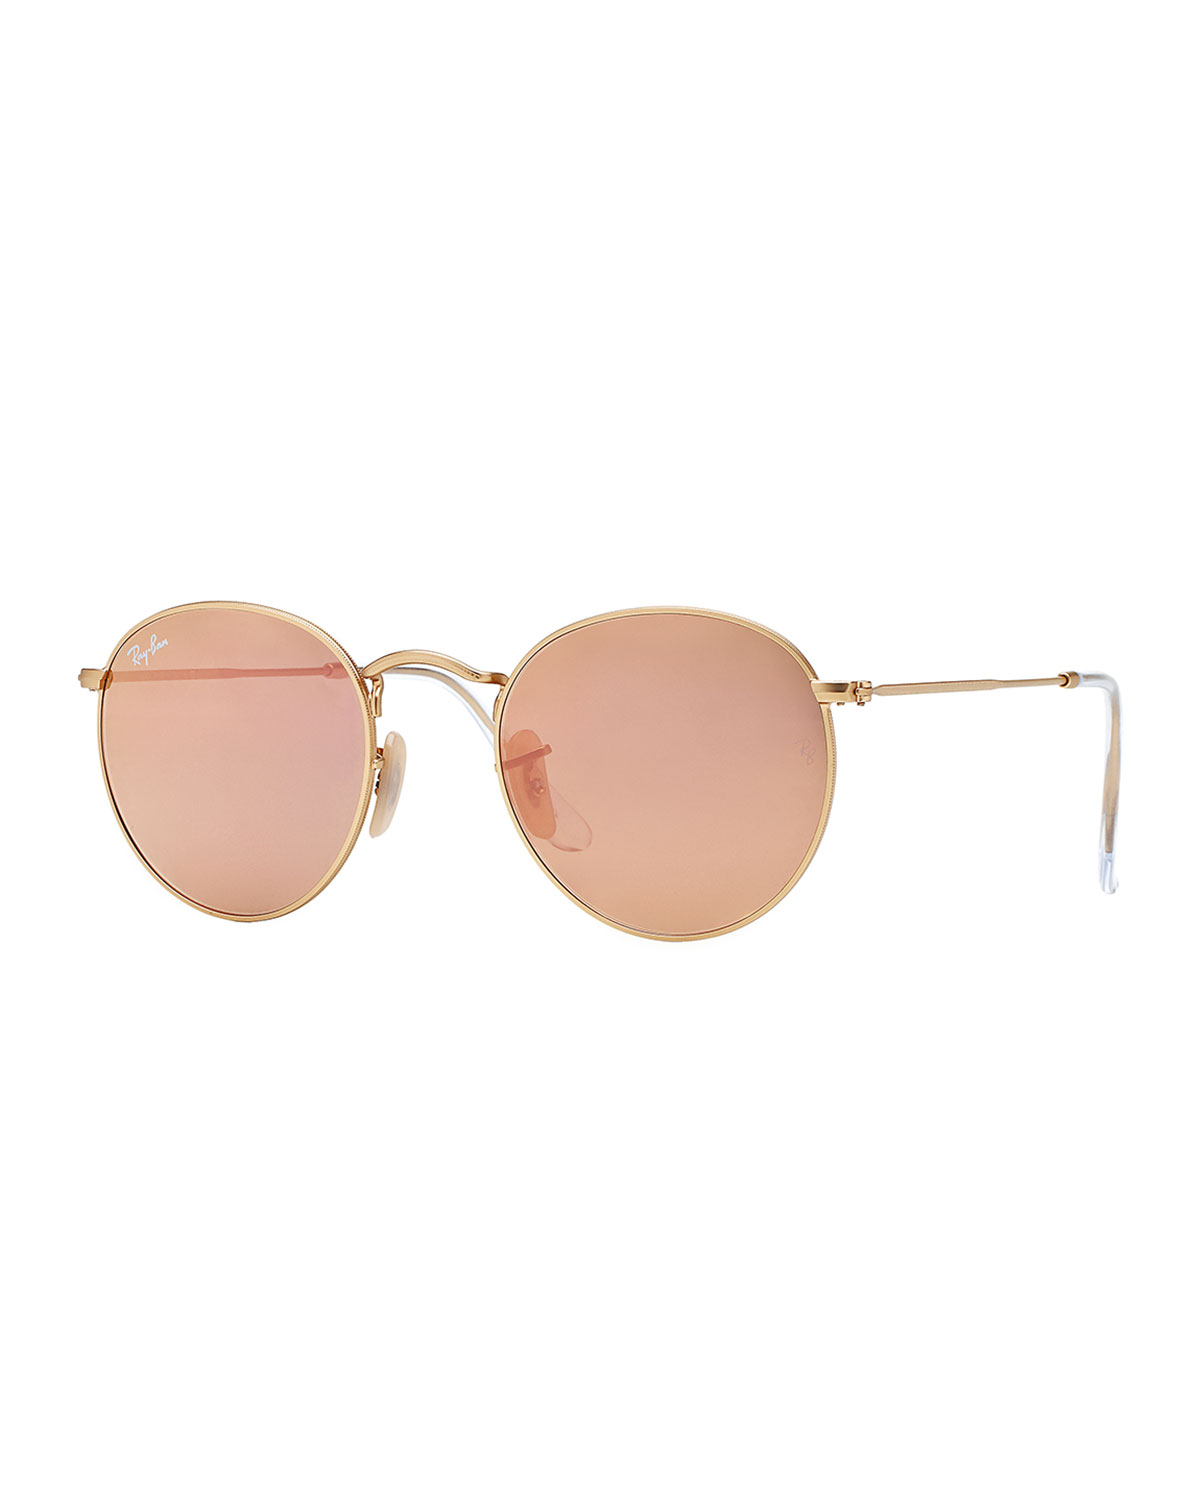 Ray-ban Round Metal-frame Sunglasses With Pink Lens in ...